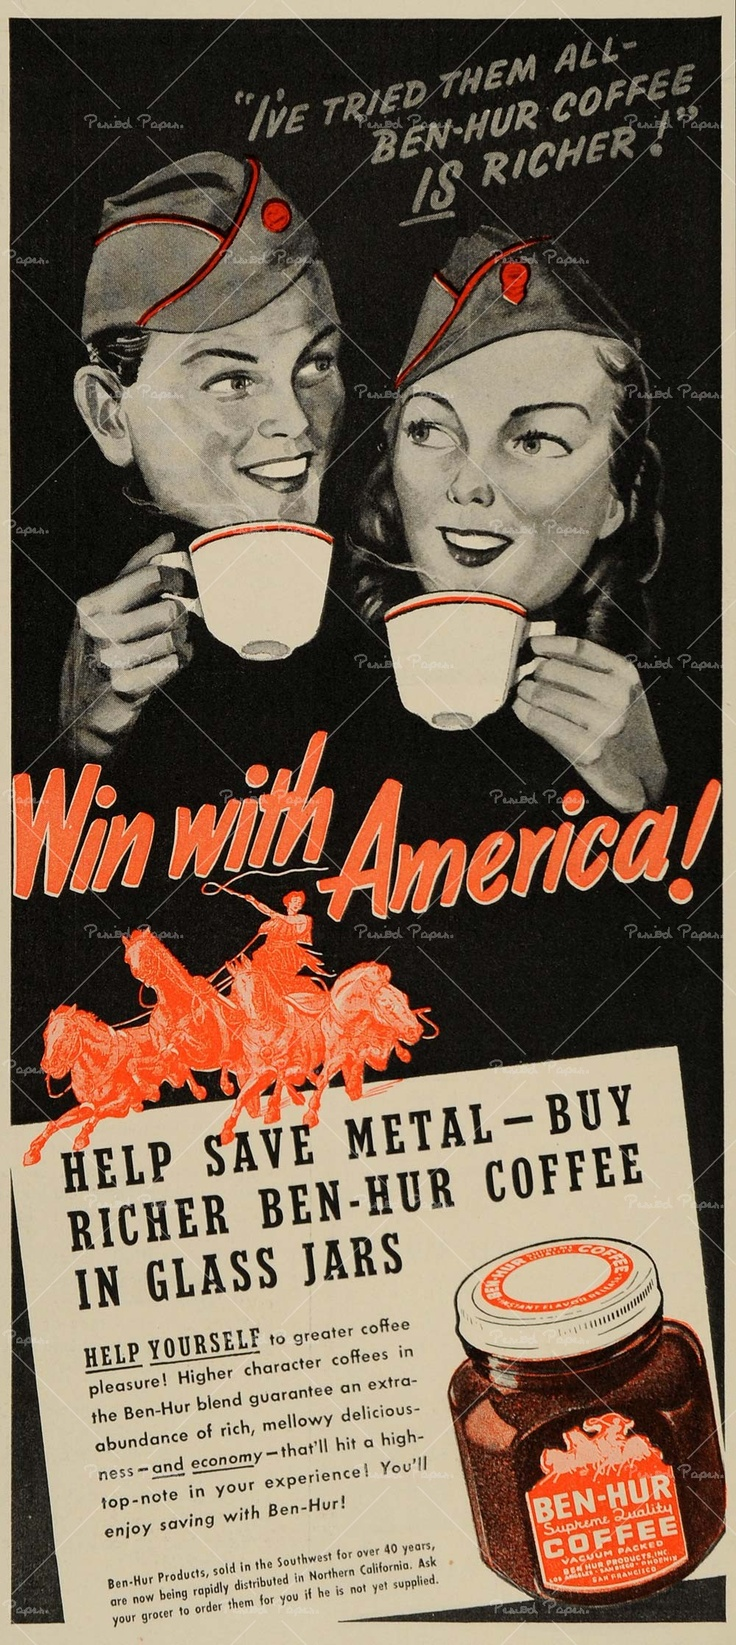 1942 ad for ben-Hur coffee to aid WWll soldier